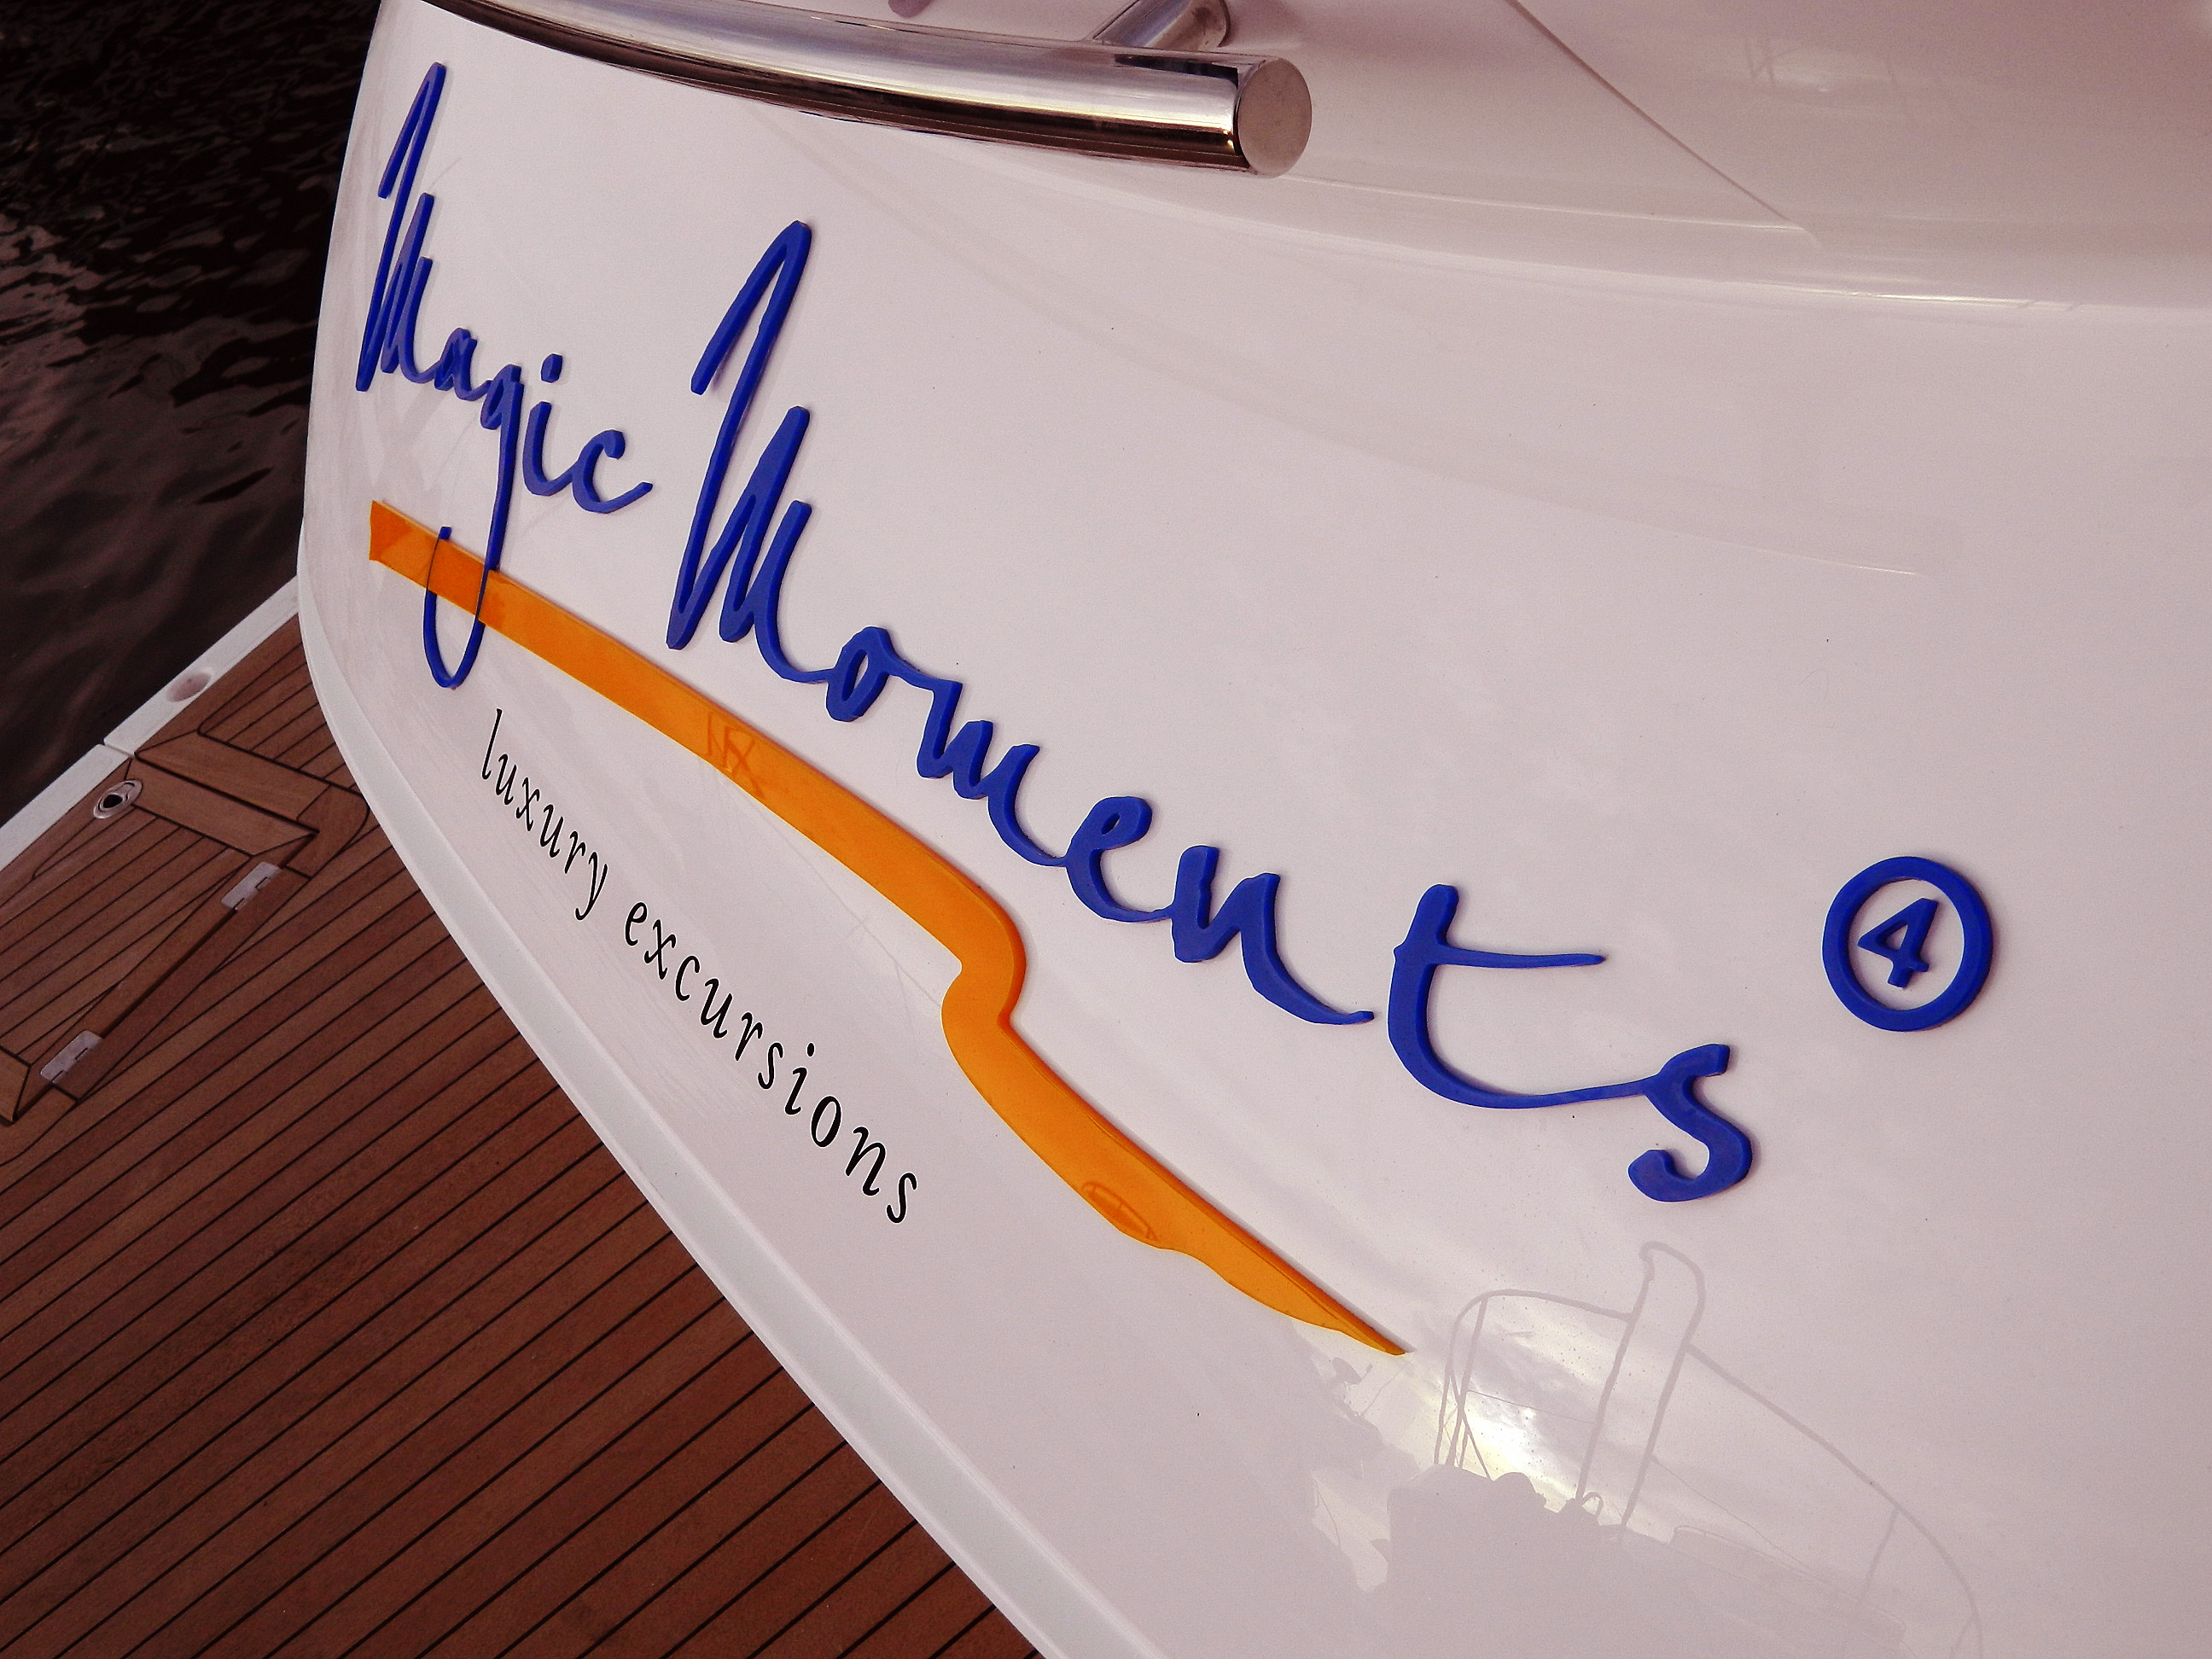 Magic Moments Yacht Sign - Acrylic Fret Cut Lettering